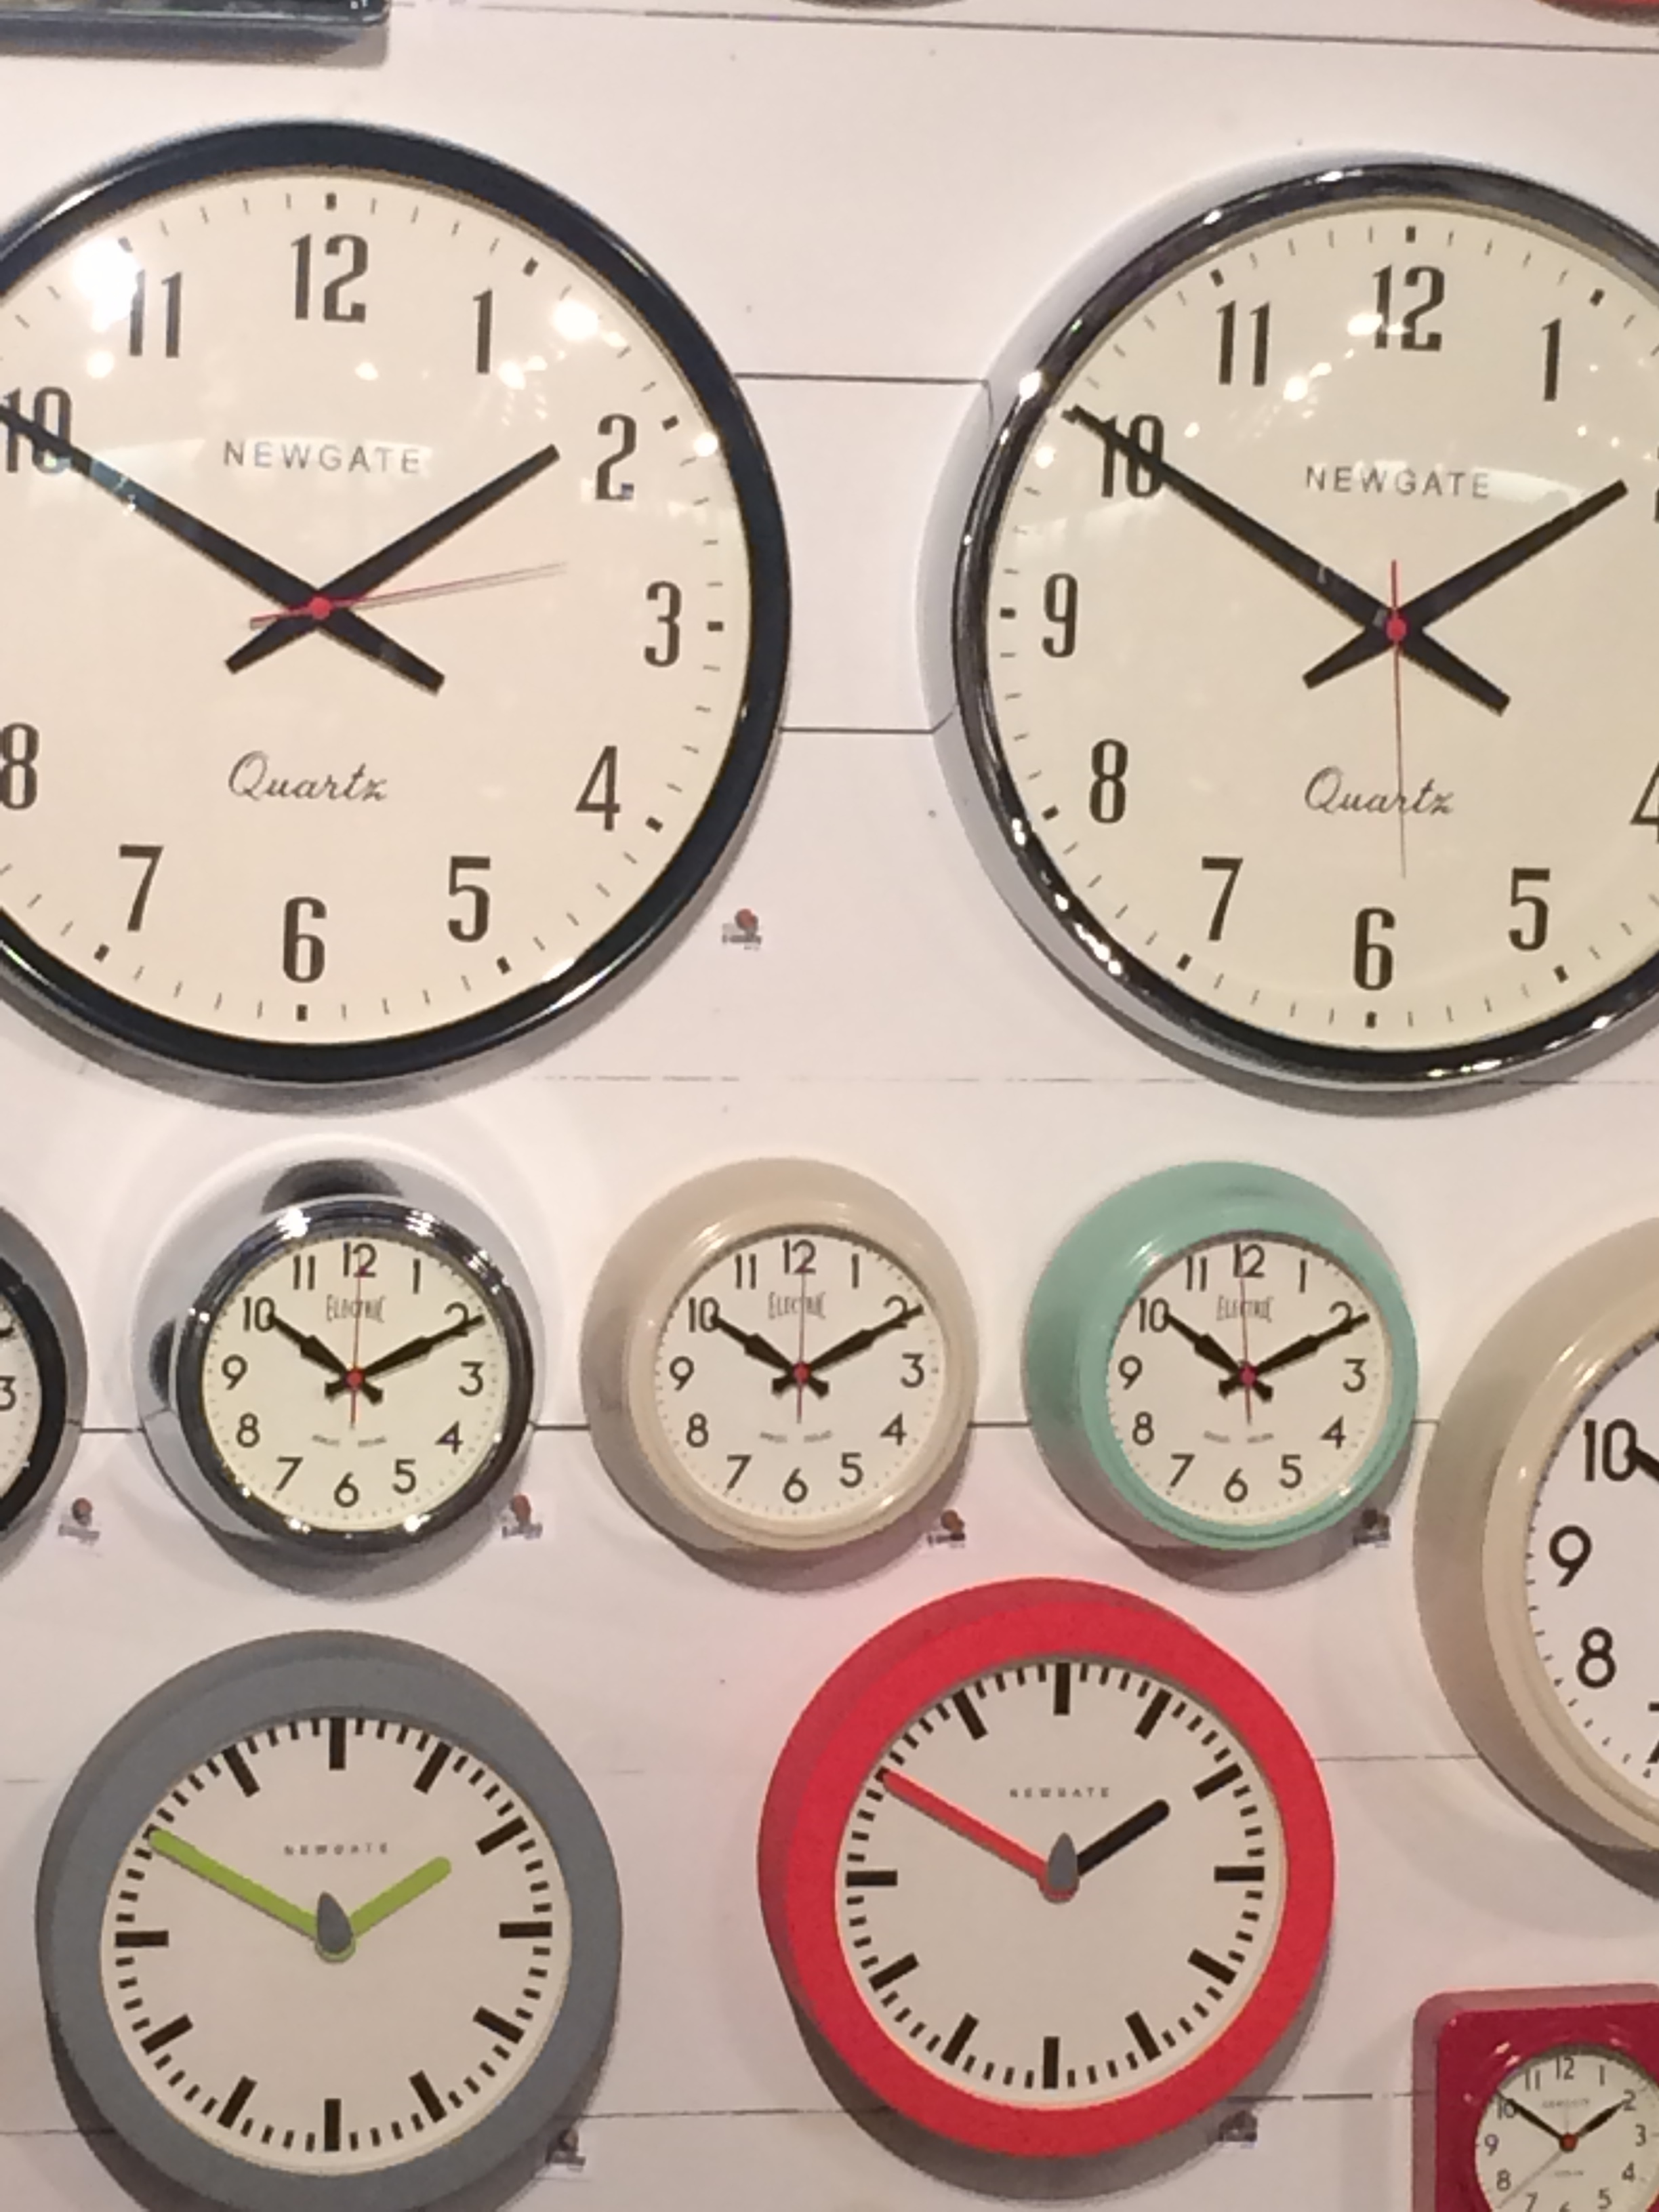 Placed a BIG order for these retro style Newgate clocks.